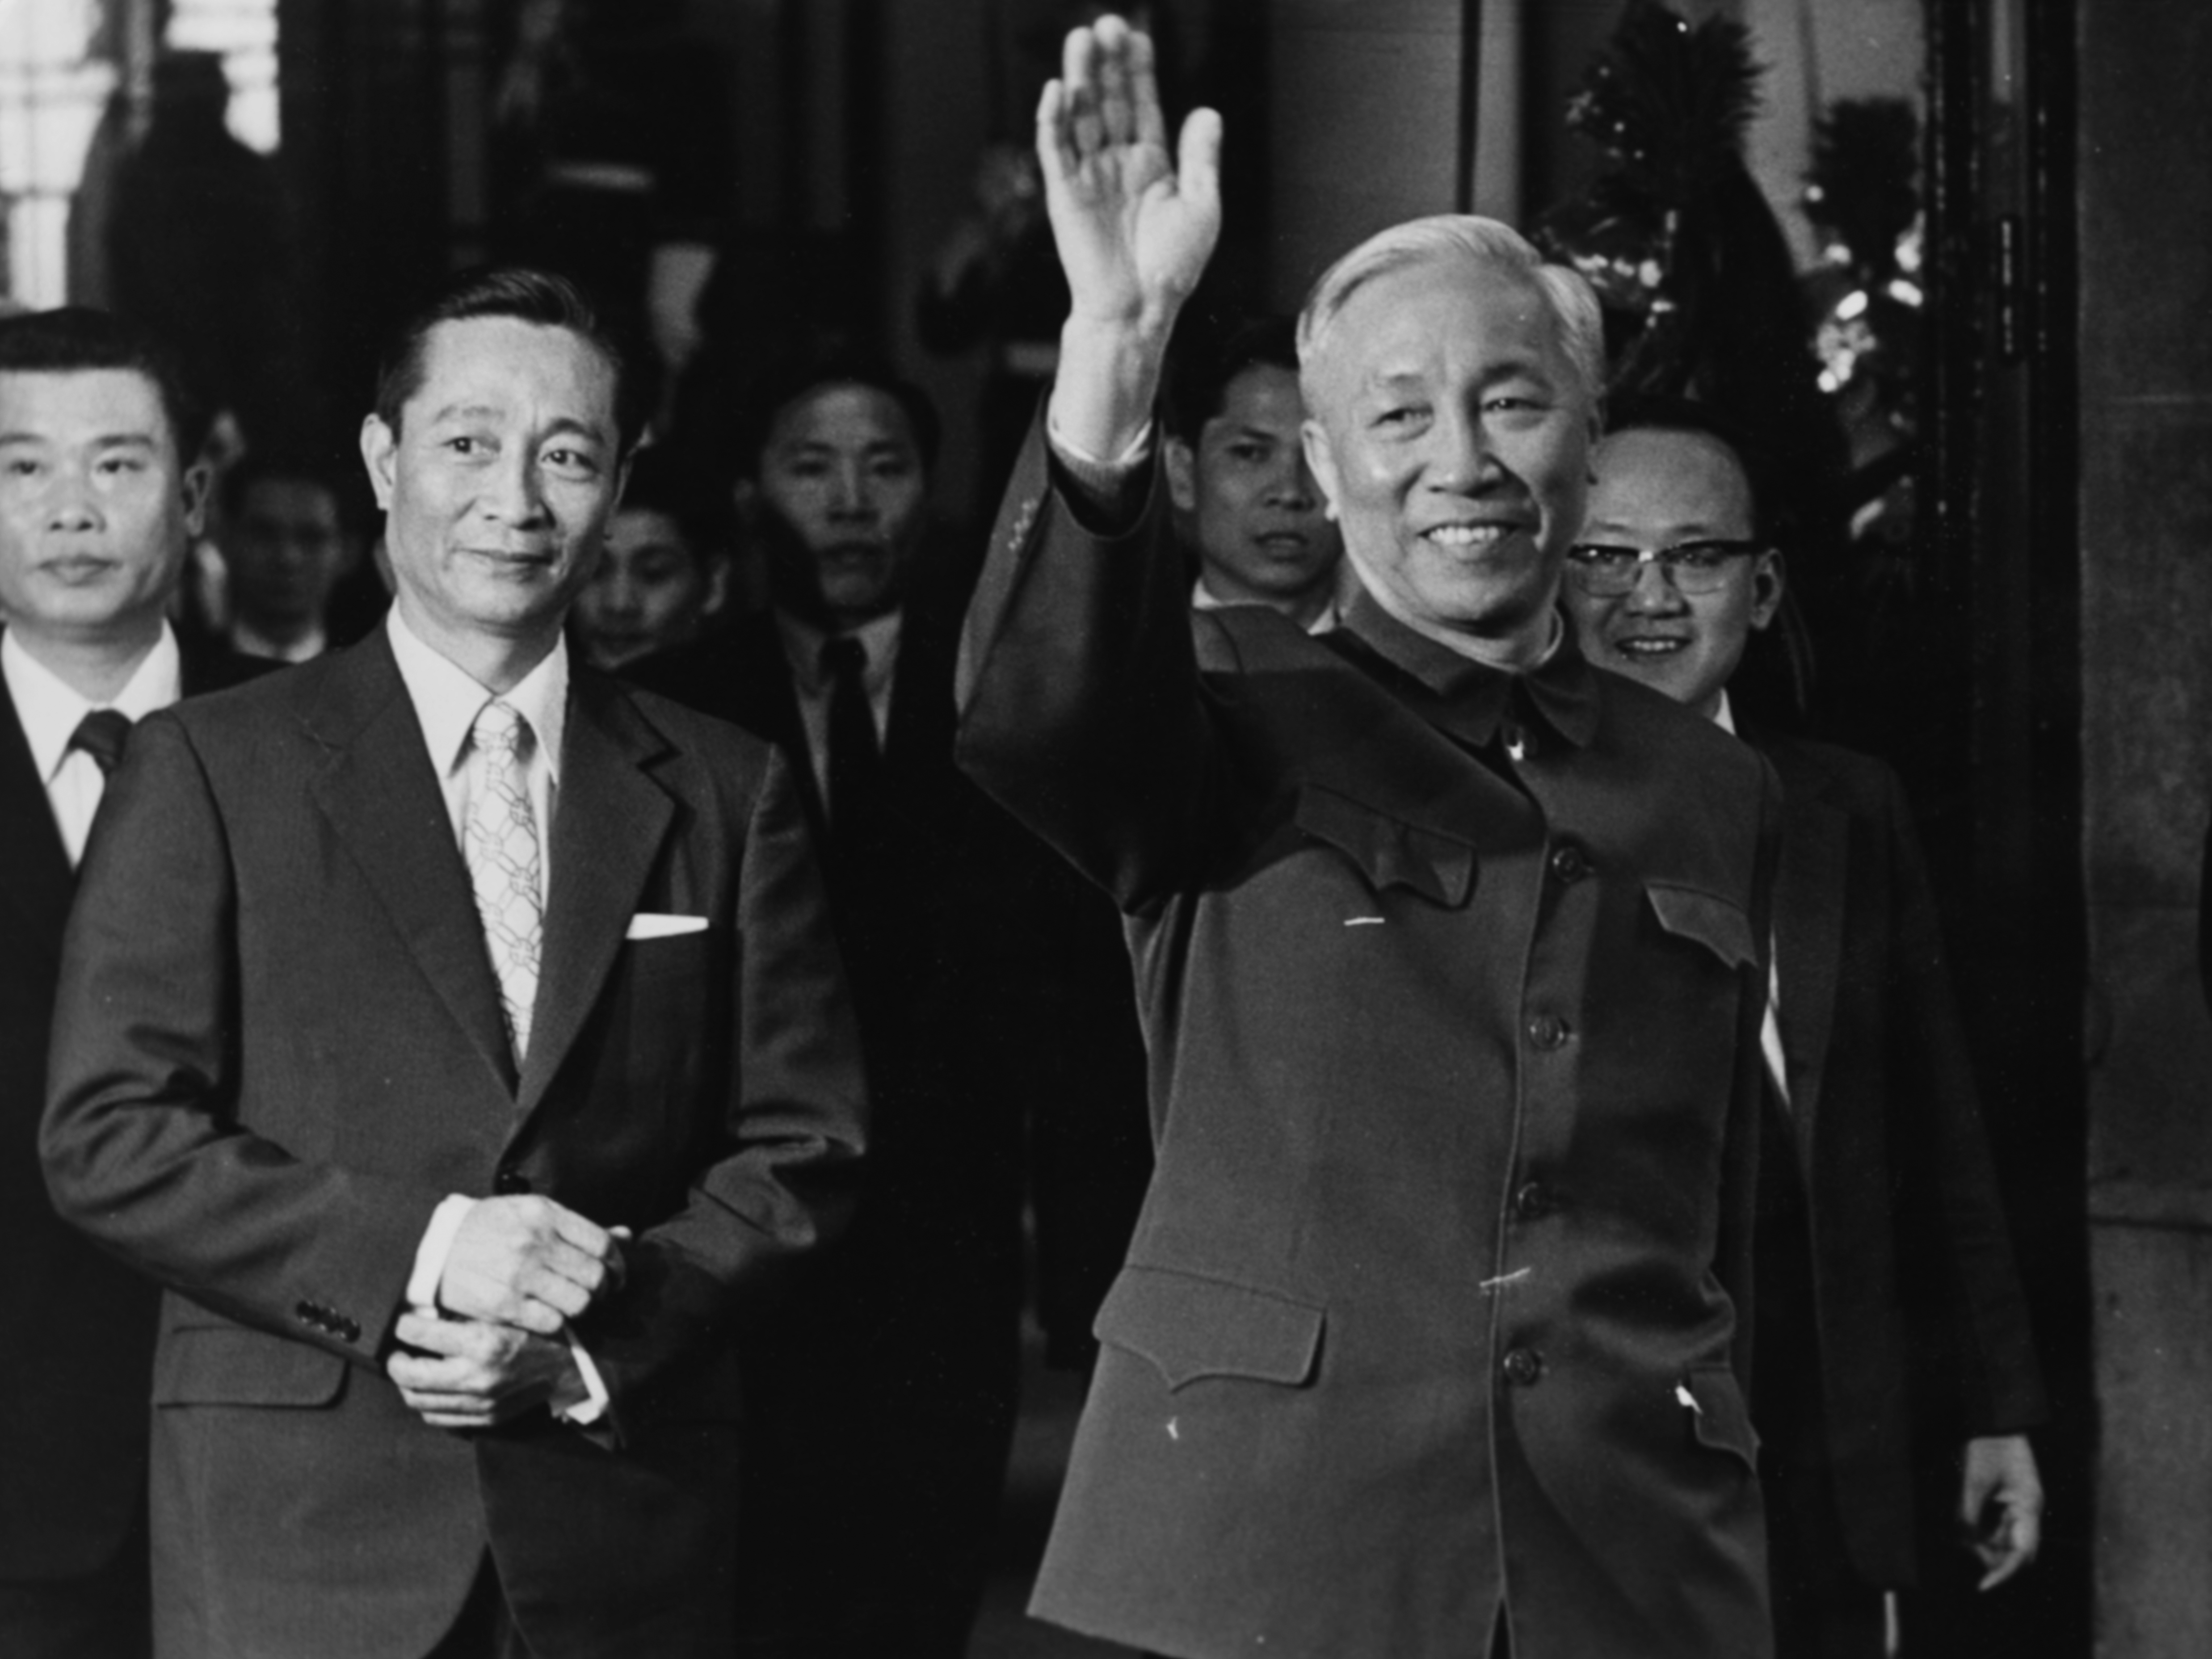 Vietnamese politician Le Duc Tho waving to photographers as he arrives at a conference in Paris, circa 1970. (Photo by Keystone/Hulton Archive/Getty Images)